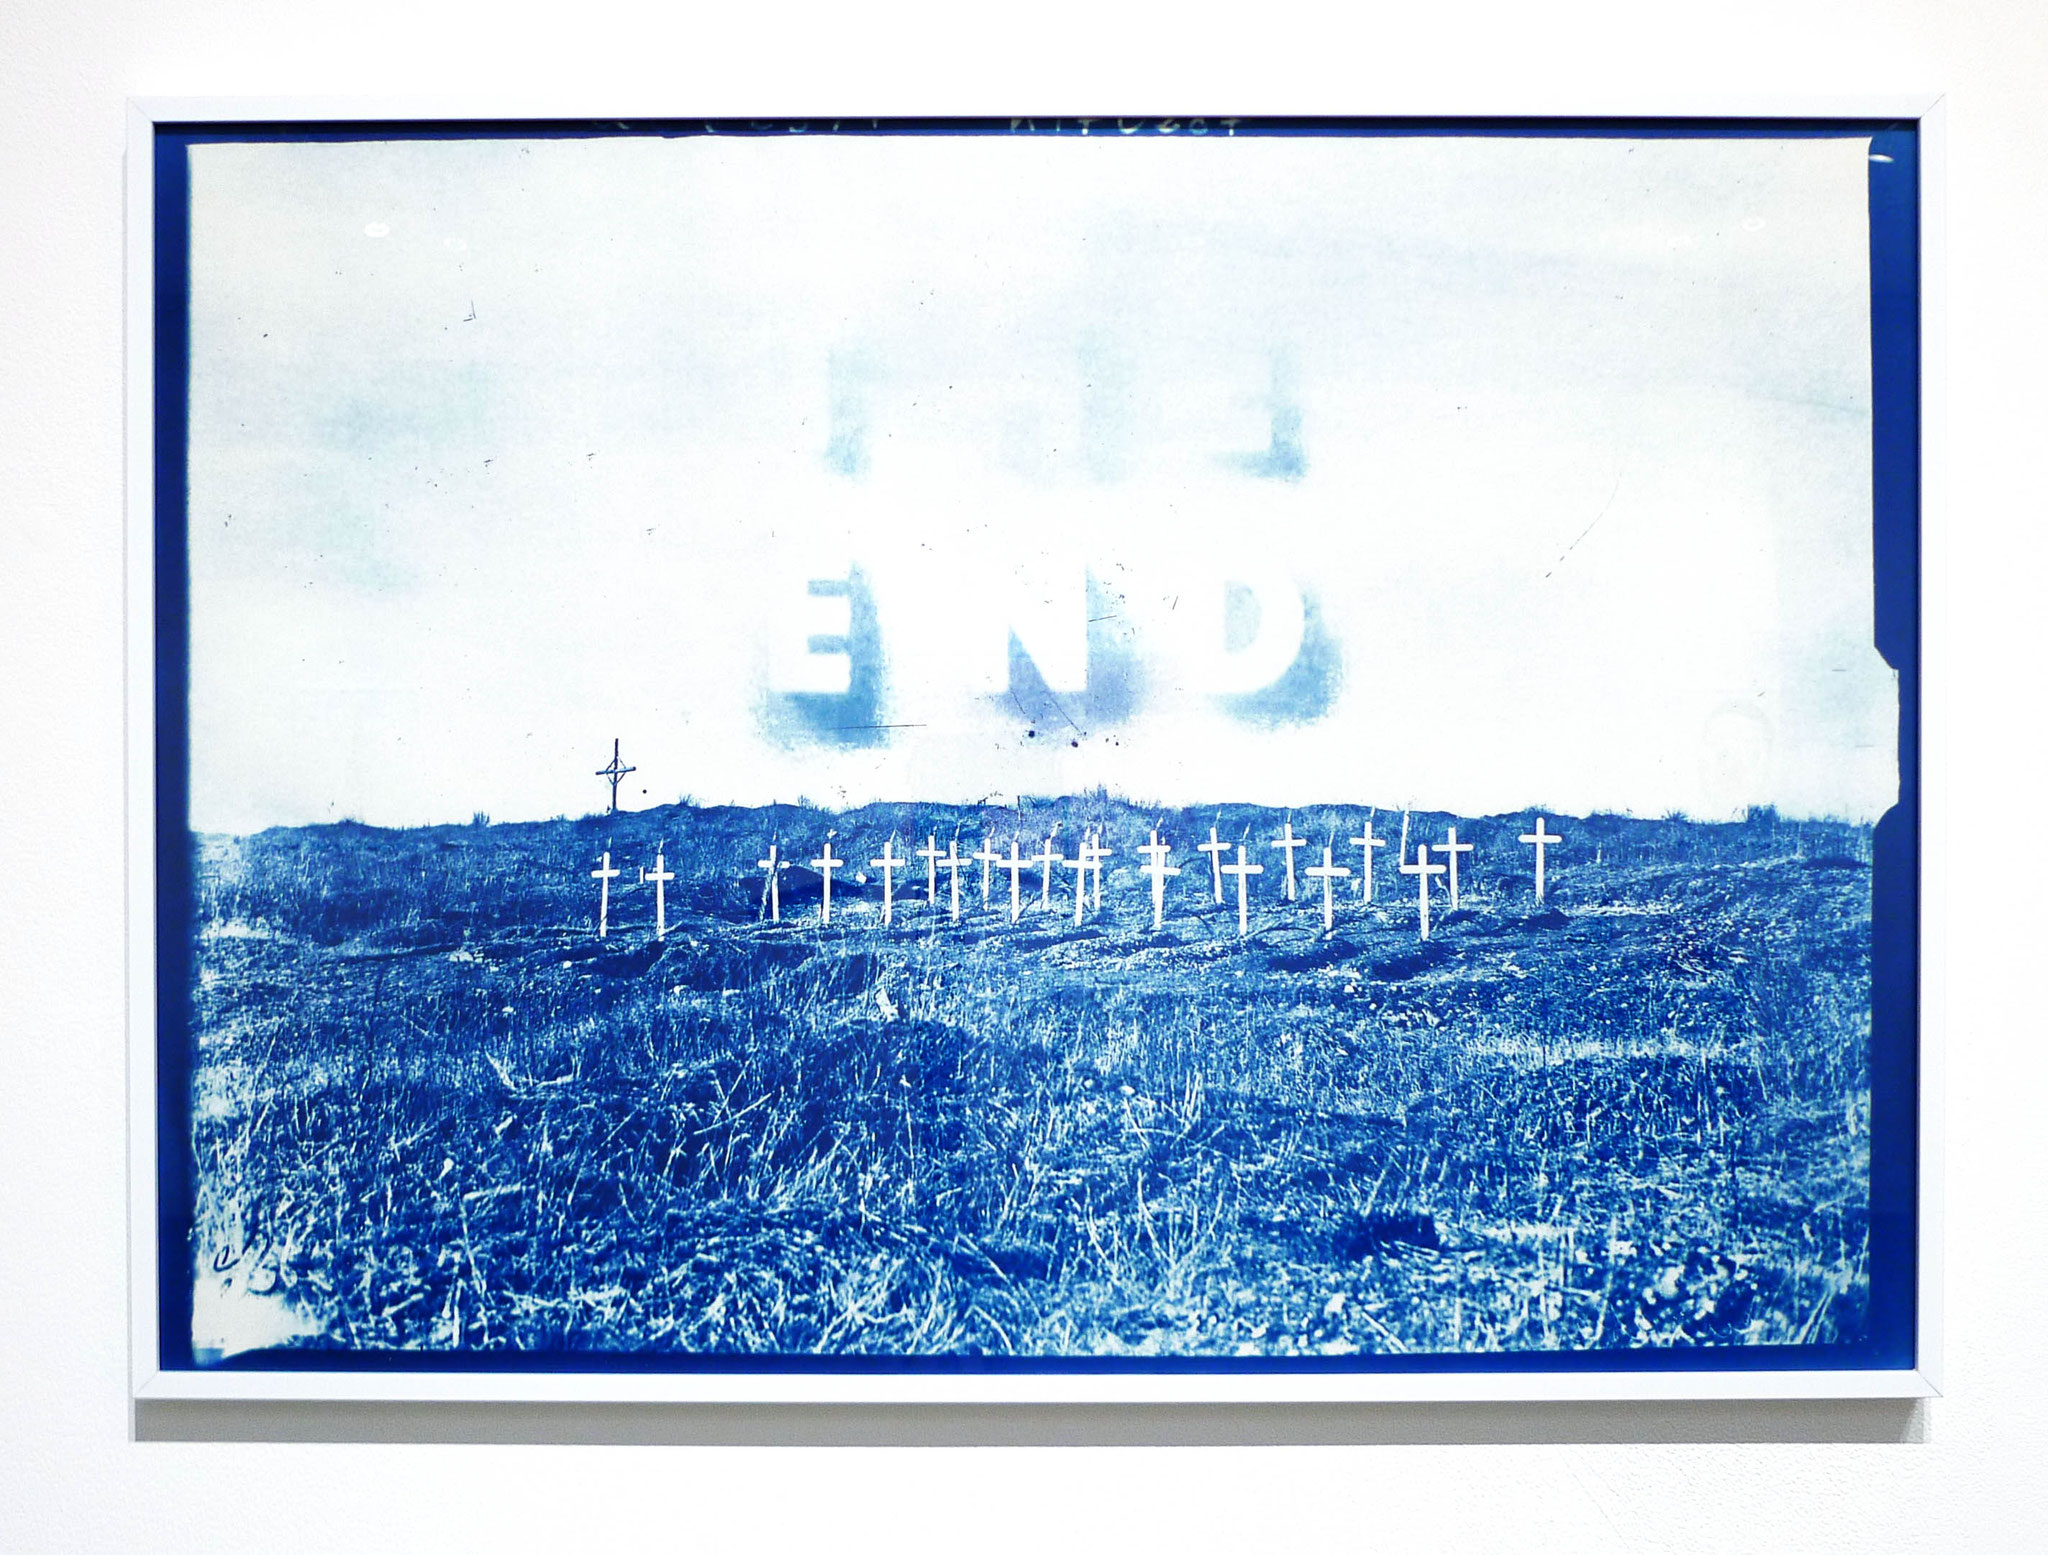 The End, 2017. Cyanotype, 50 x 70 cm. Photo : Loïc Creff